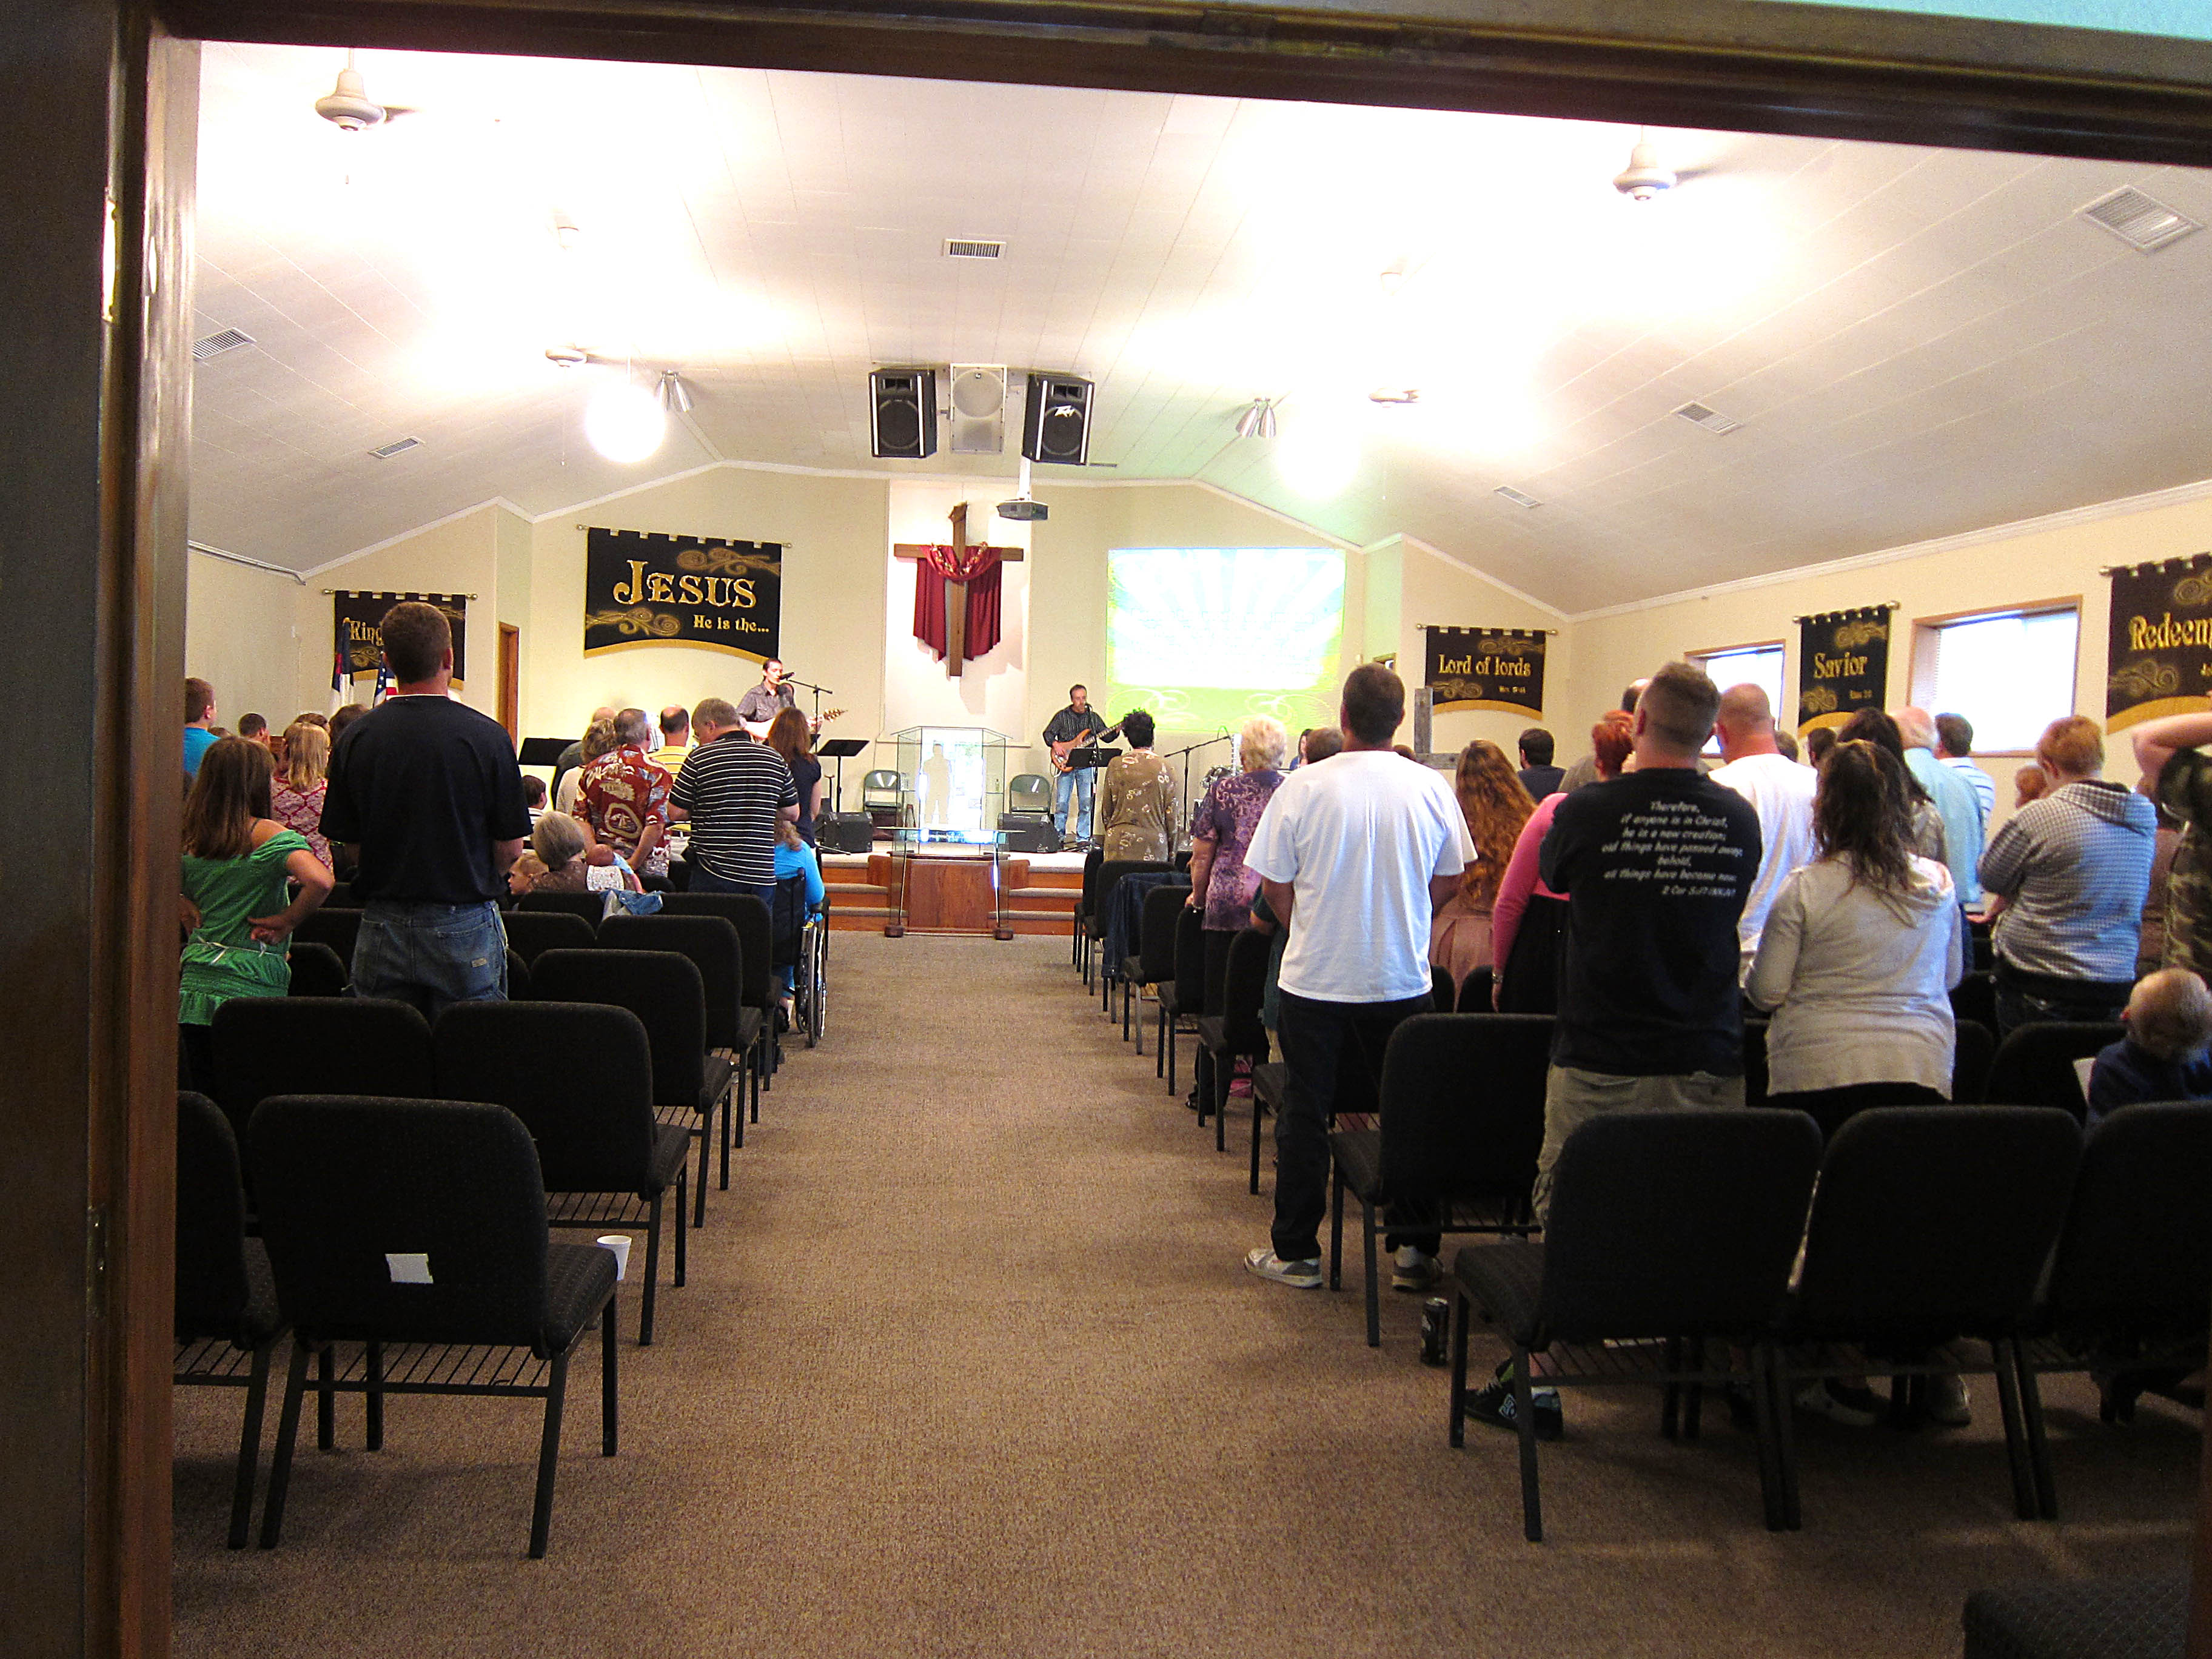 People enjoying worship with the new church decorations that fixed the blank church walls